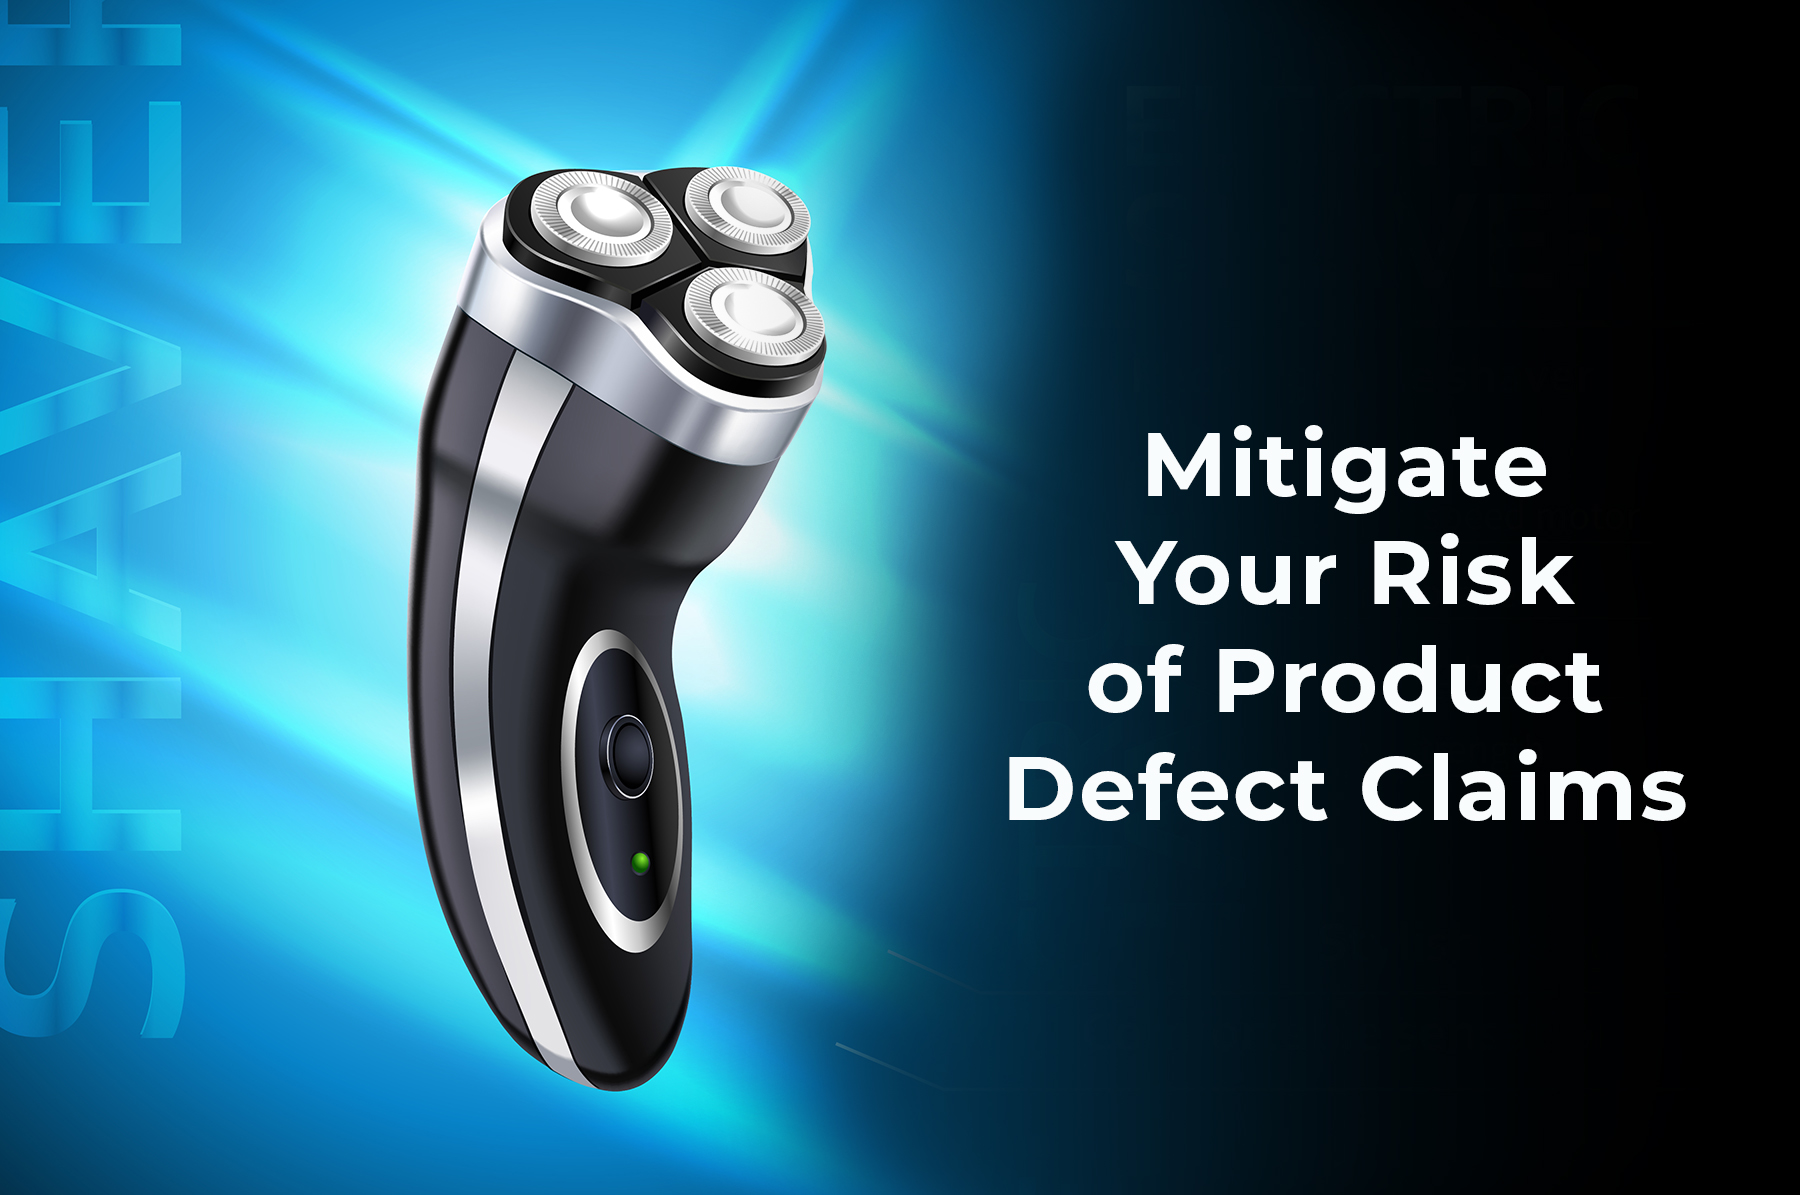 Product defect claims